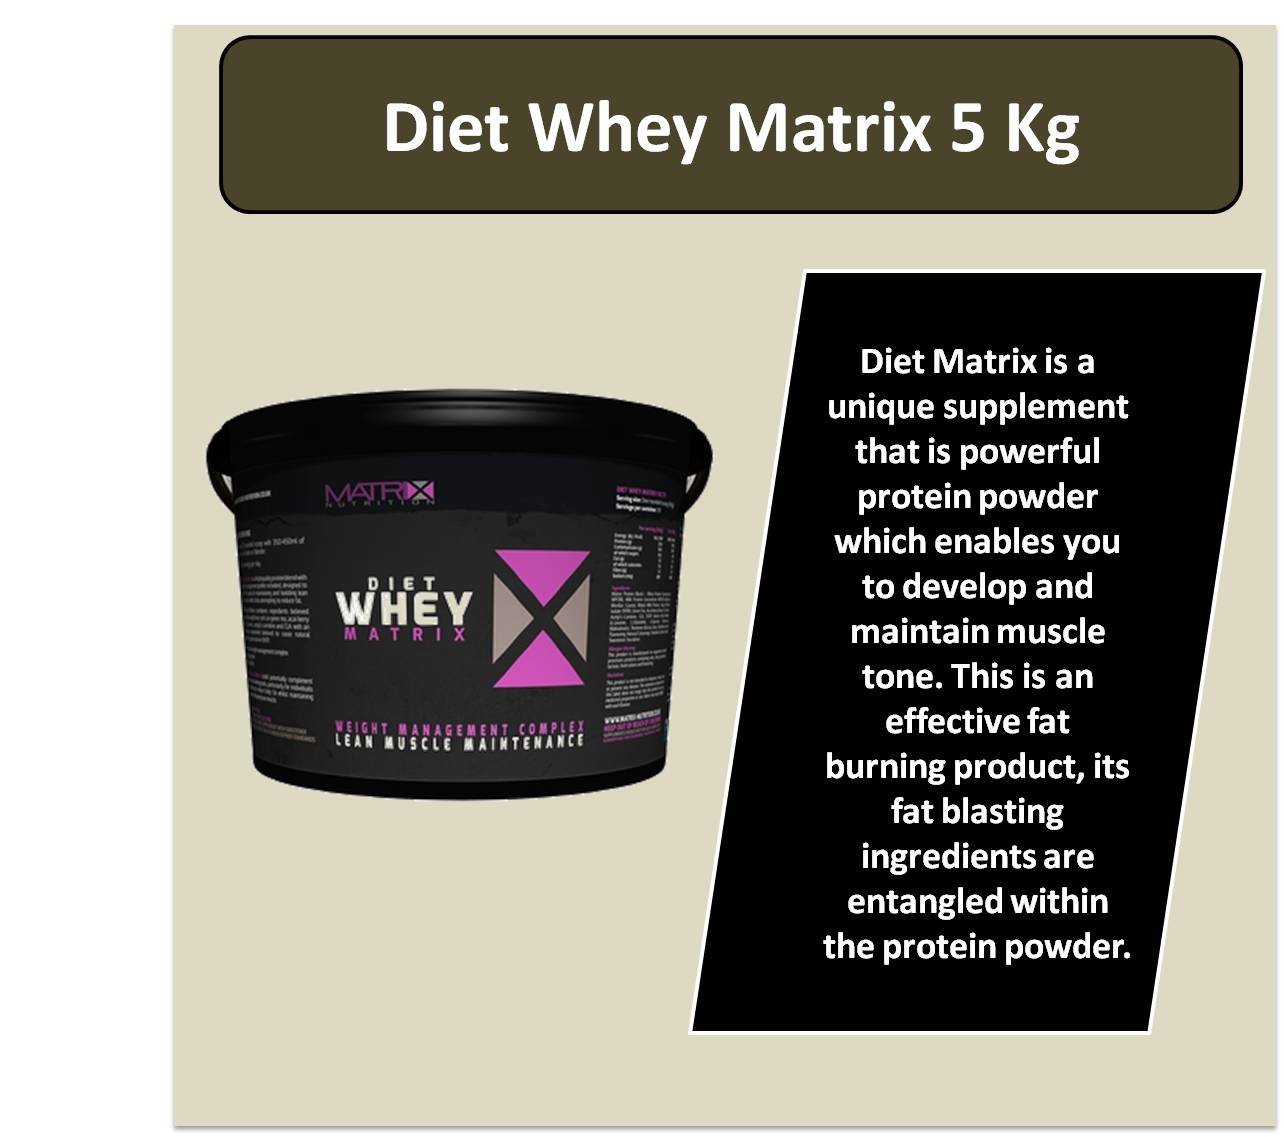 Diet Whey Matrix 5 Kg